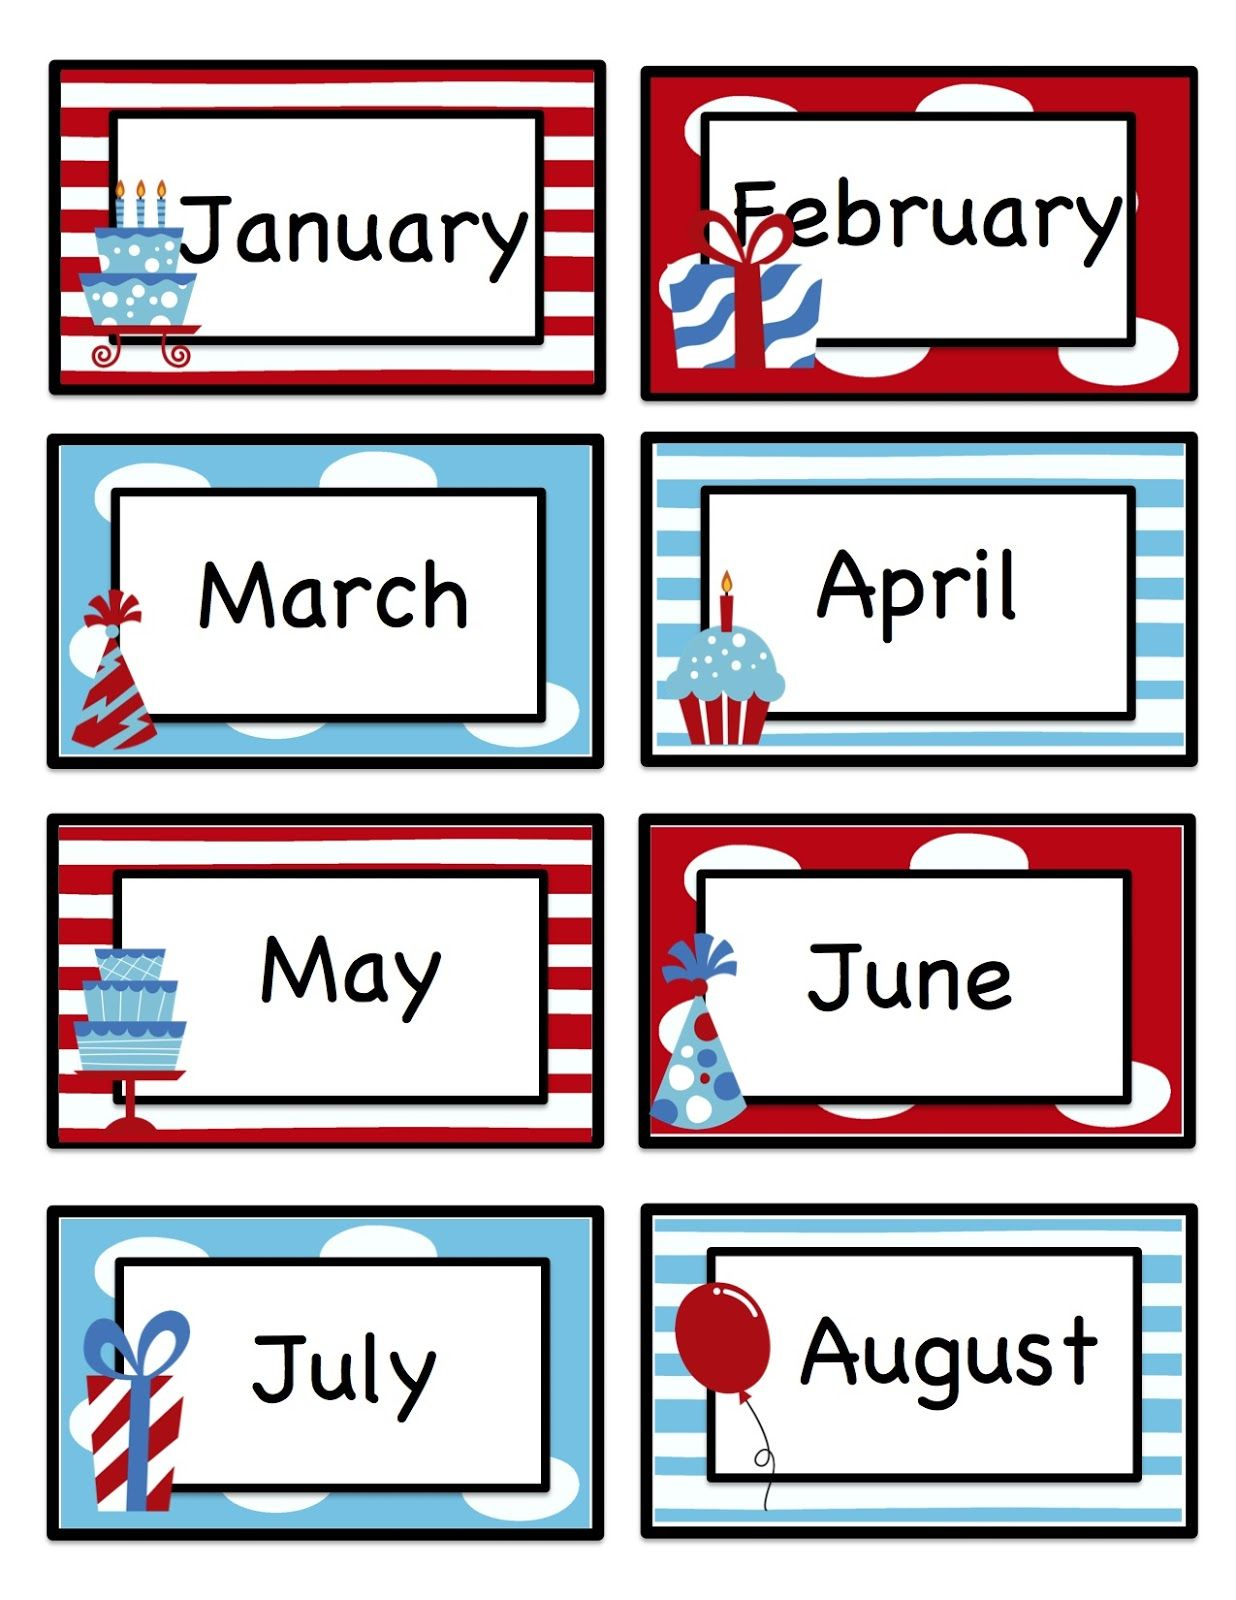 Cat in the Hat Teaching Ideas   Activity sheets  lesson plans moreover  additionally Links to Free Dr  Seuss Fonts  Can be used for printables additionally Dr Seuss Classroom Ideas   Dr  Seuss Classroom Door   Bulletin additionally 83 best Dr  Seuss back to school images on Pinterest   School as well 247 best Book Activities   Unit Studies images on Pinterest together with  as well Hat Dr  Seuss Printable Rhymes   Evening Family Storytime Dr moreover 68 best Dr  Seuss Theme images on Pinterest   Dr suess in addition  likewise classroom decorating ideas dr   kindergarten   Pinterest   Dr. on best dr seuss ideas on pinterest images costumes activities s birthday school theme clroom week and unit study worksheets adding kindergarten numbers